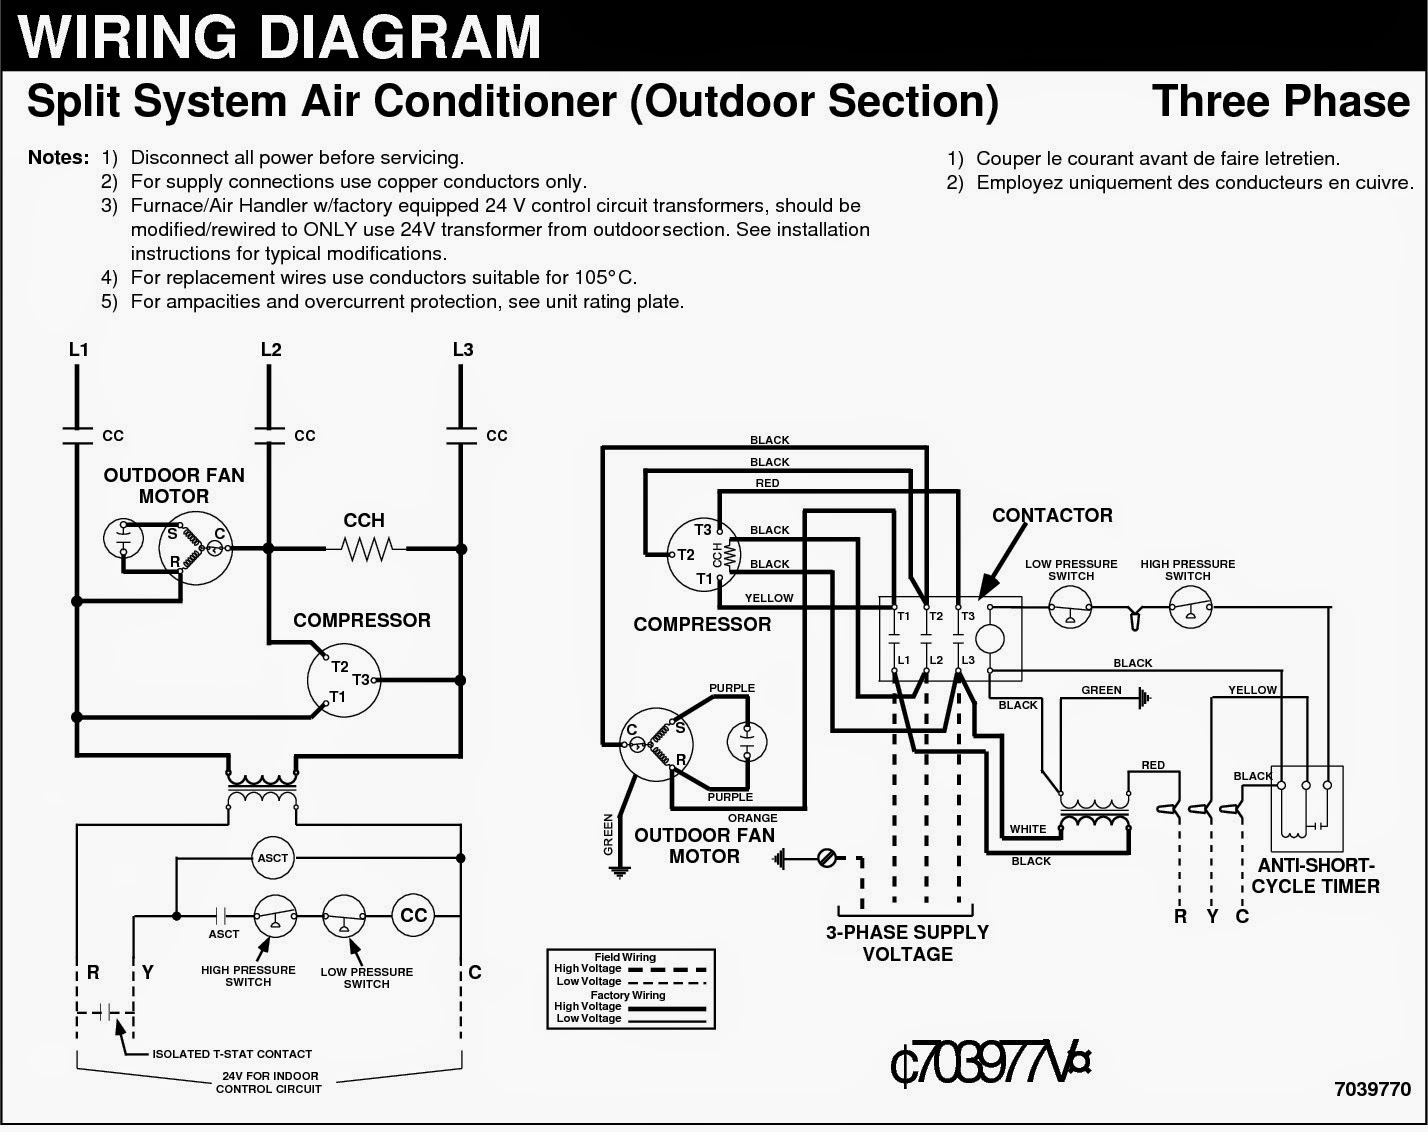 3+phase electrical wiring diagrams for air conditioning systems part two  at n-0.co